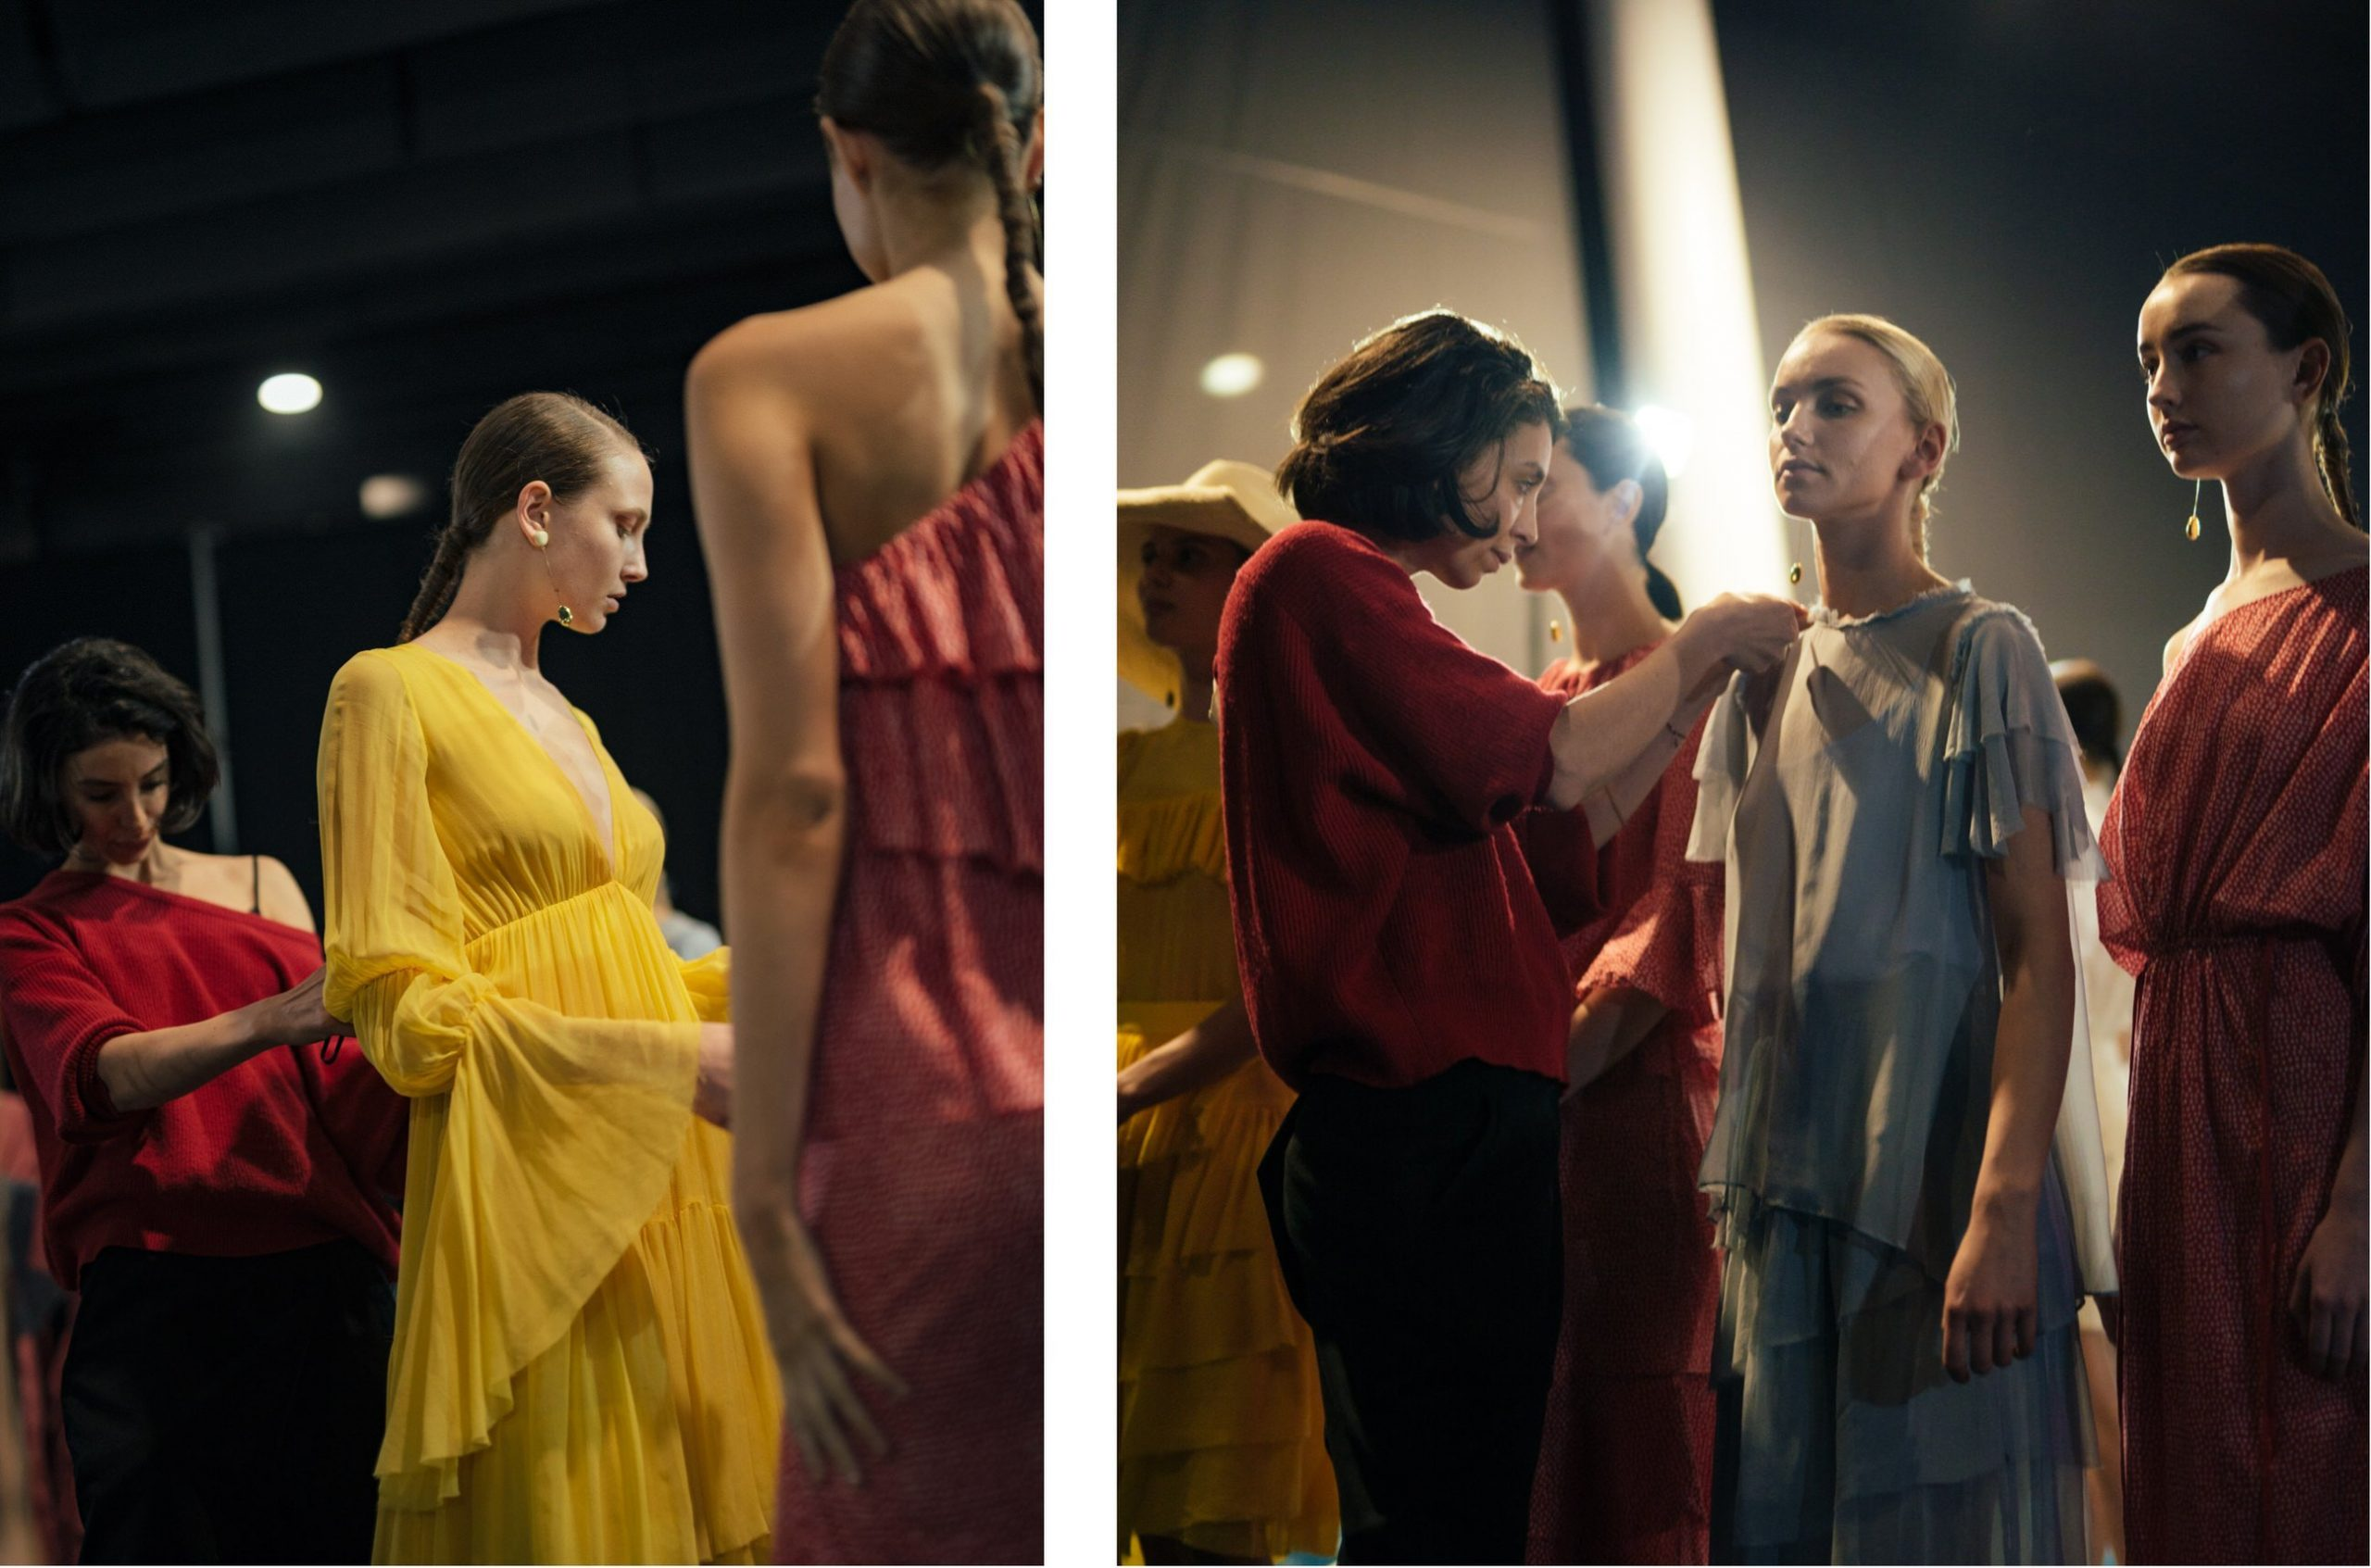 Backstage at the 20th Telstra Perth Fashion Festival